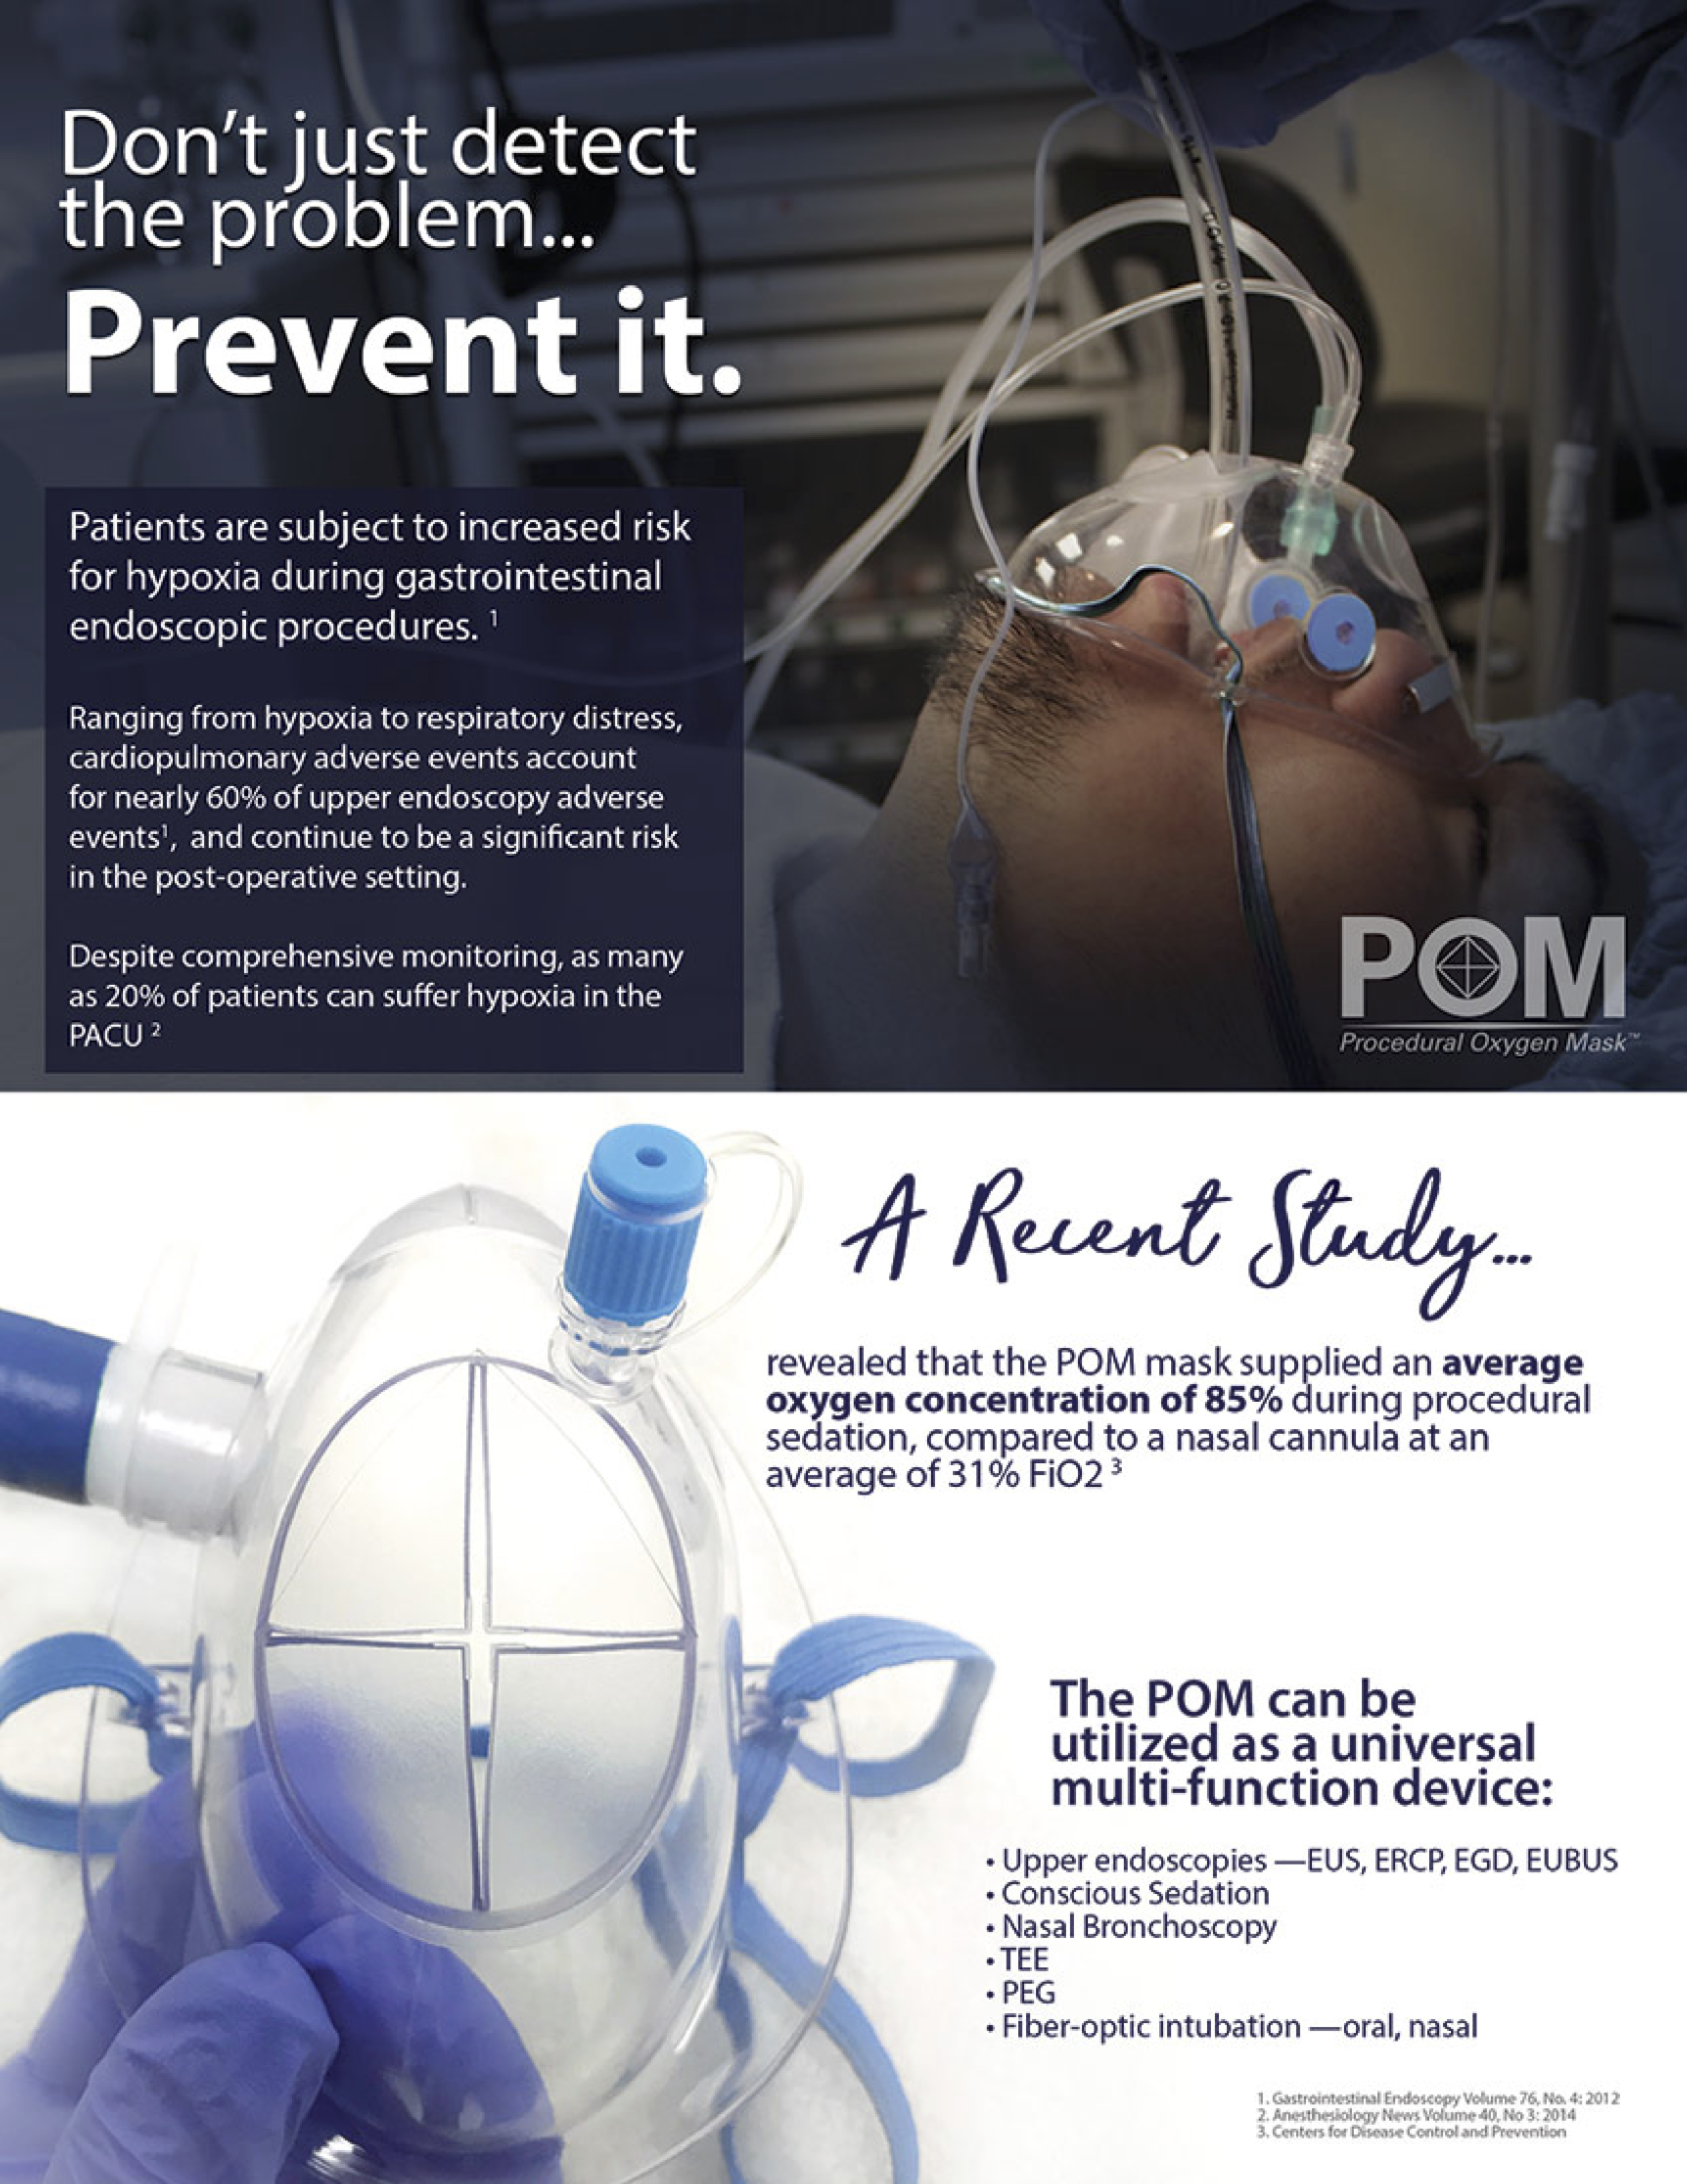 Panoramic_Procedural Oxygen Mask_POM.png